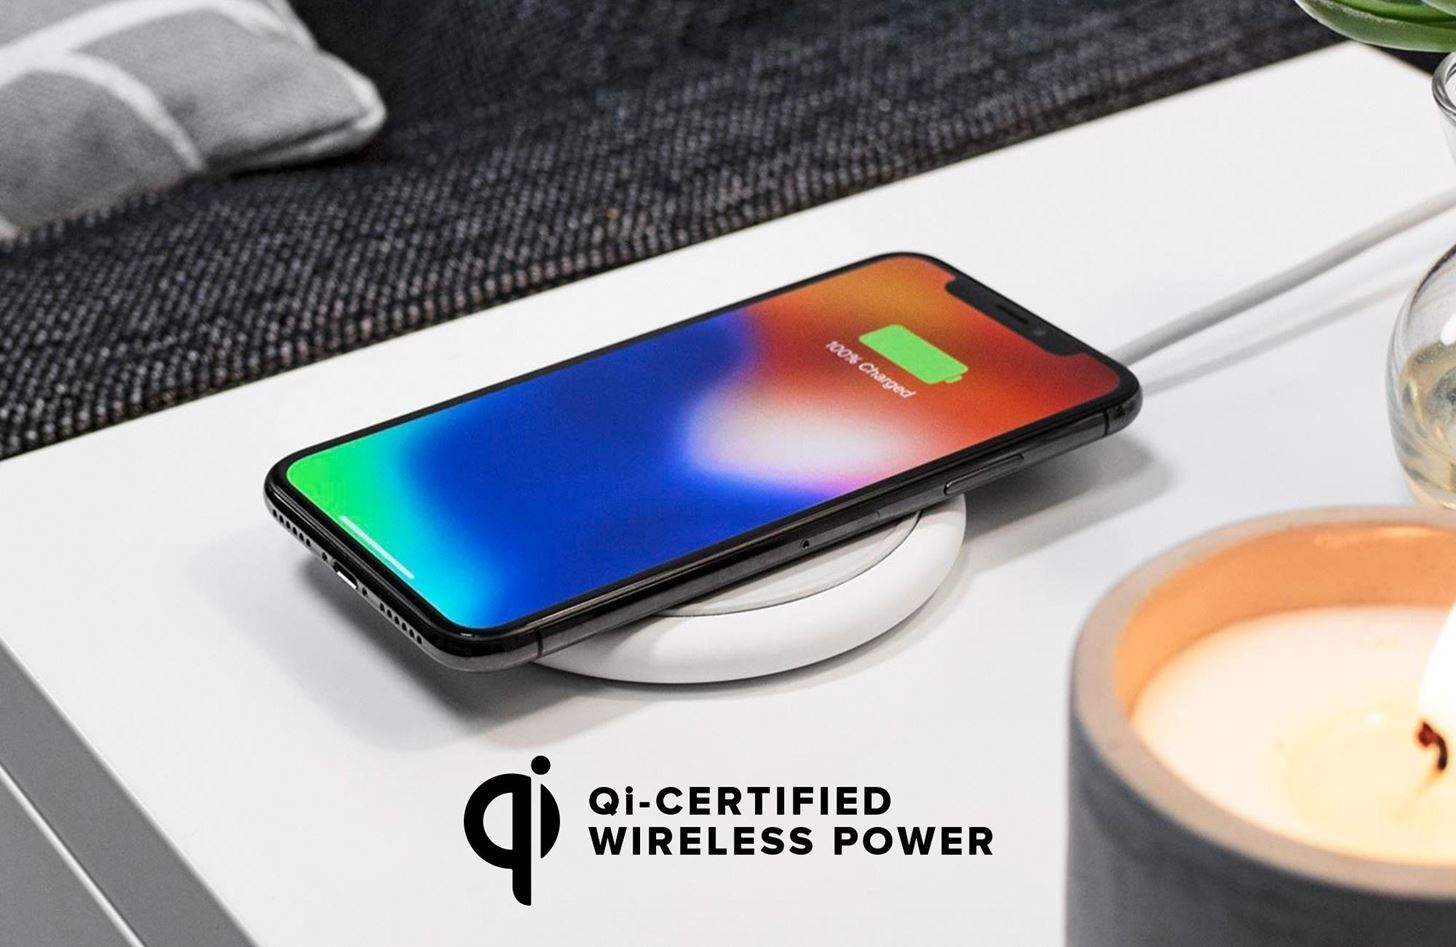 2018 Gift Certificate: Must-Have Accessories for iPhone Owners